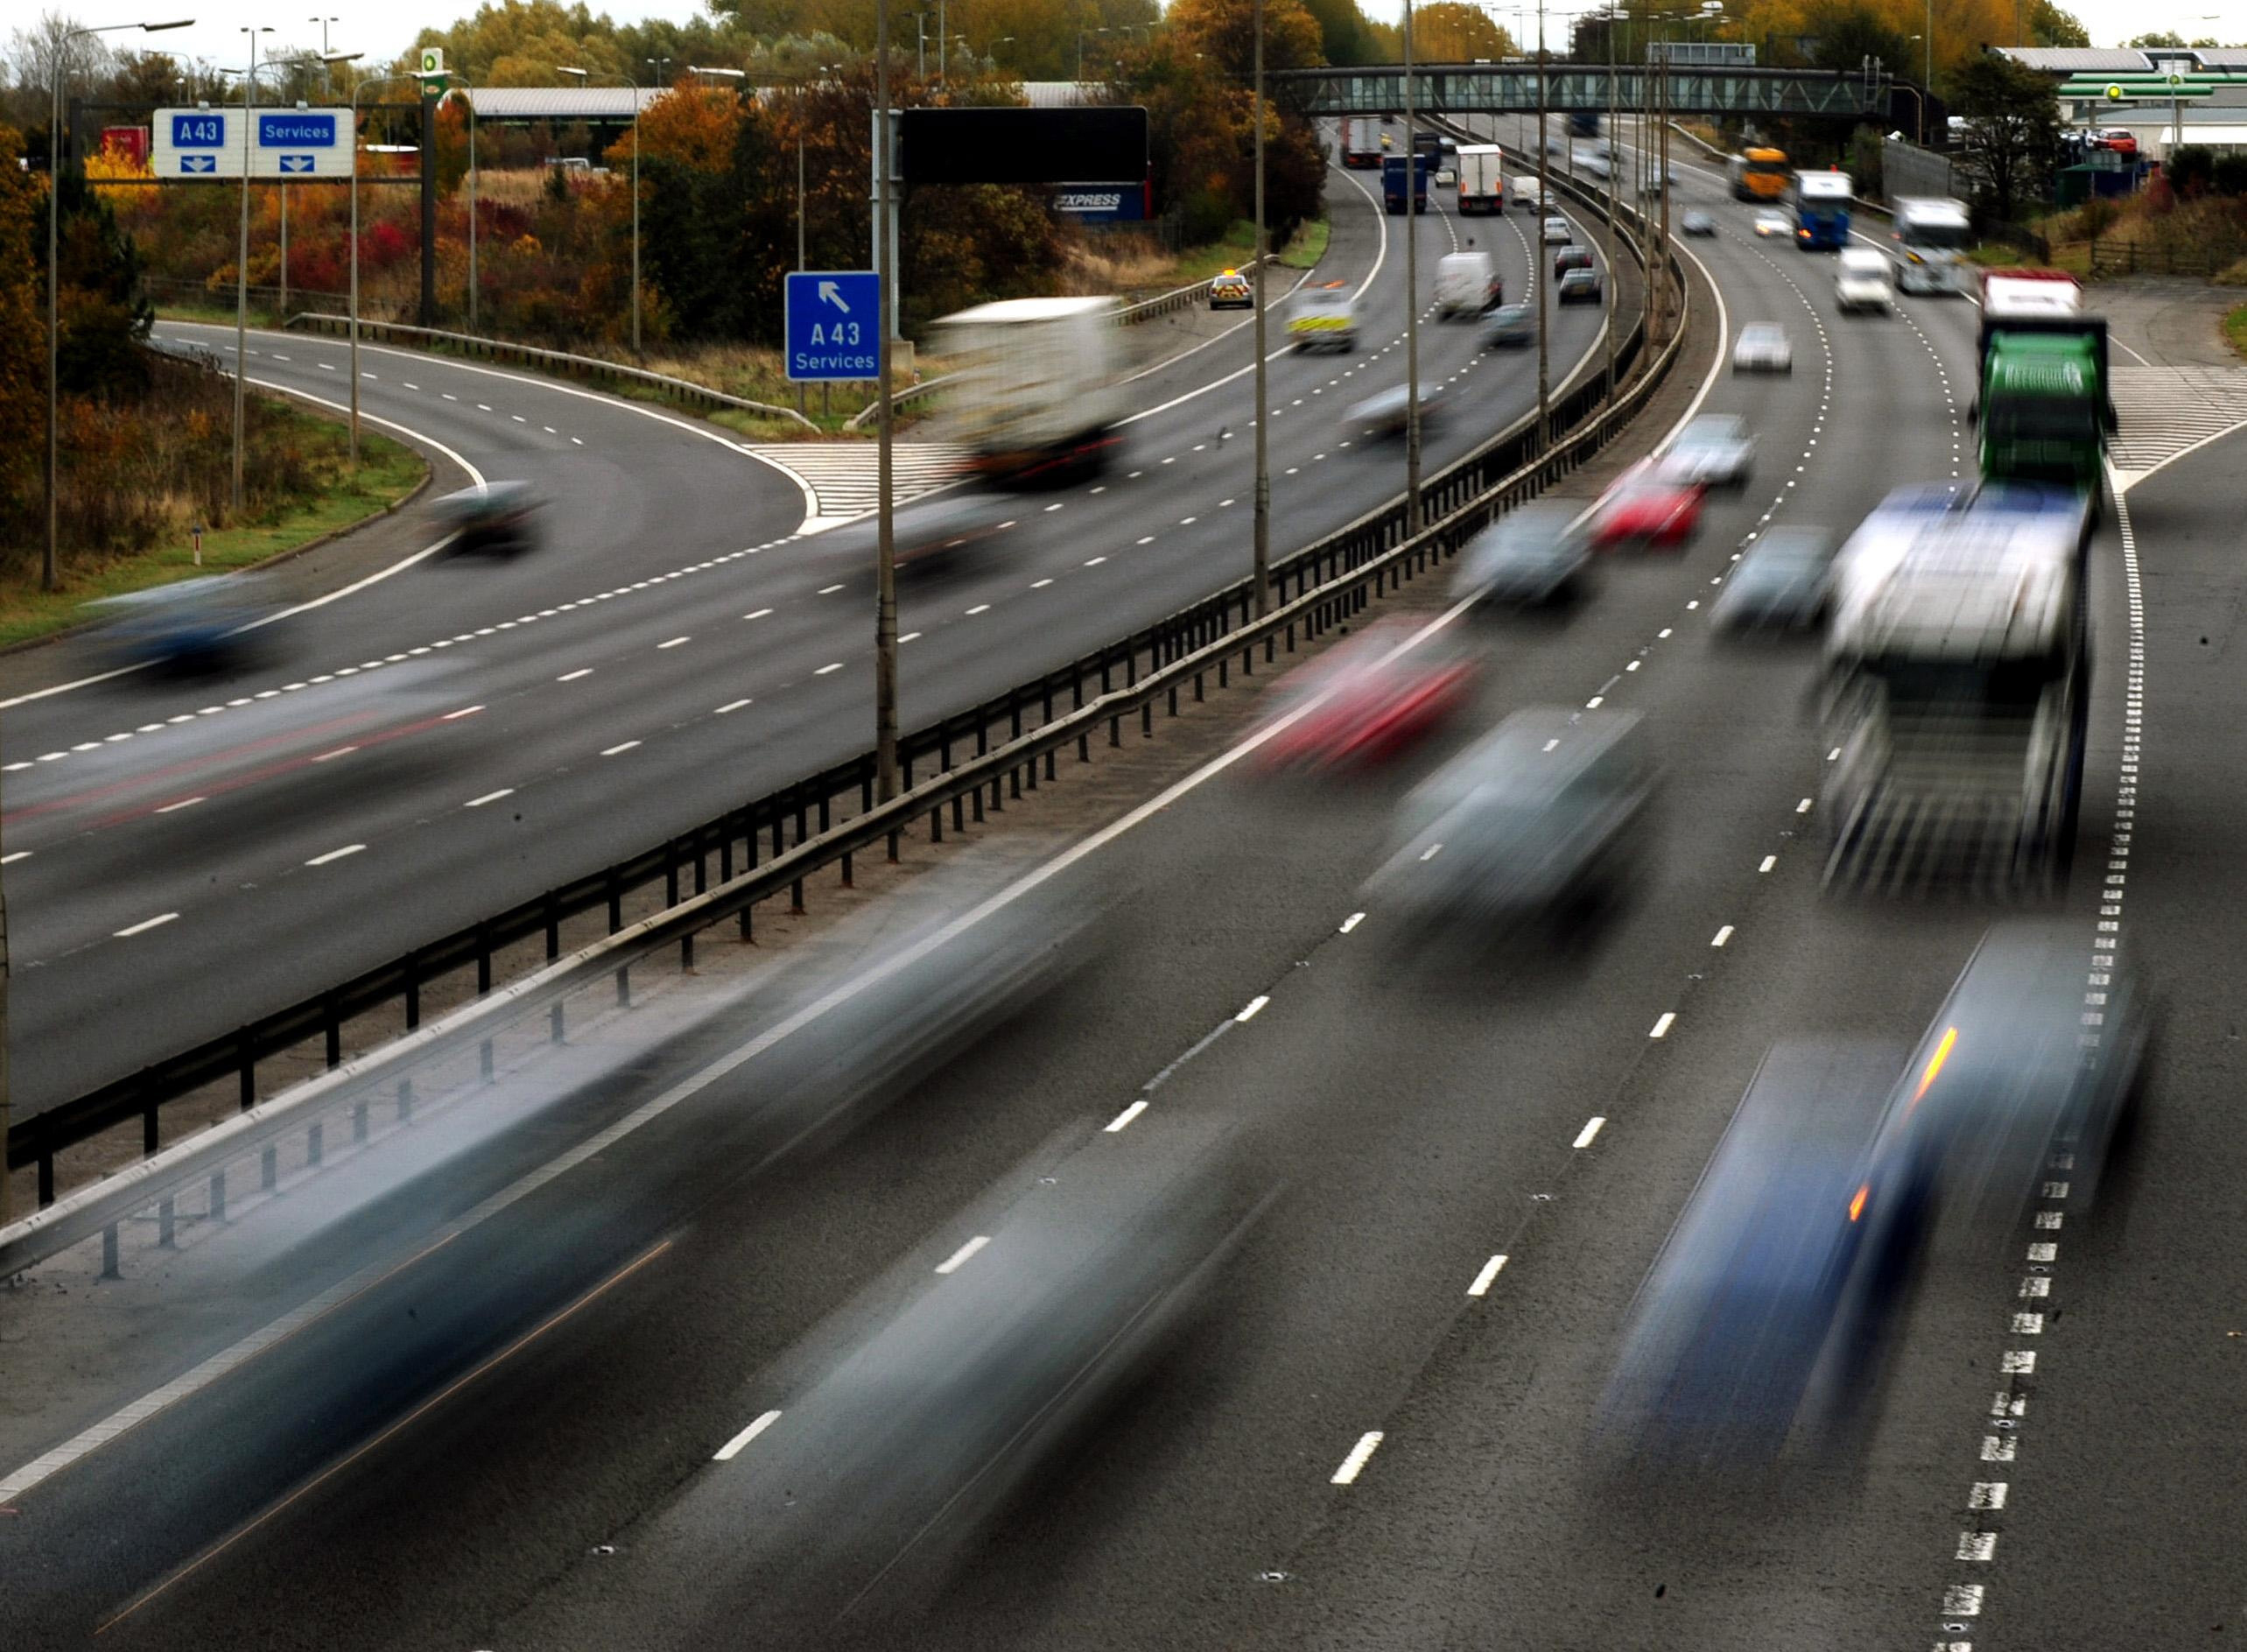 UK Driving Tests Are Going To See Some Pretty Big Changes